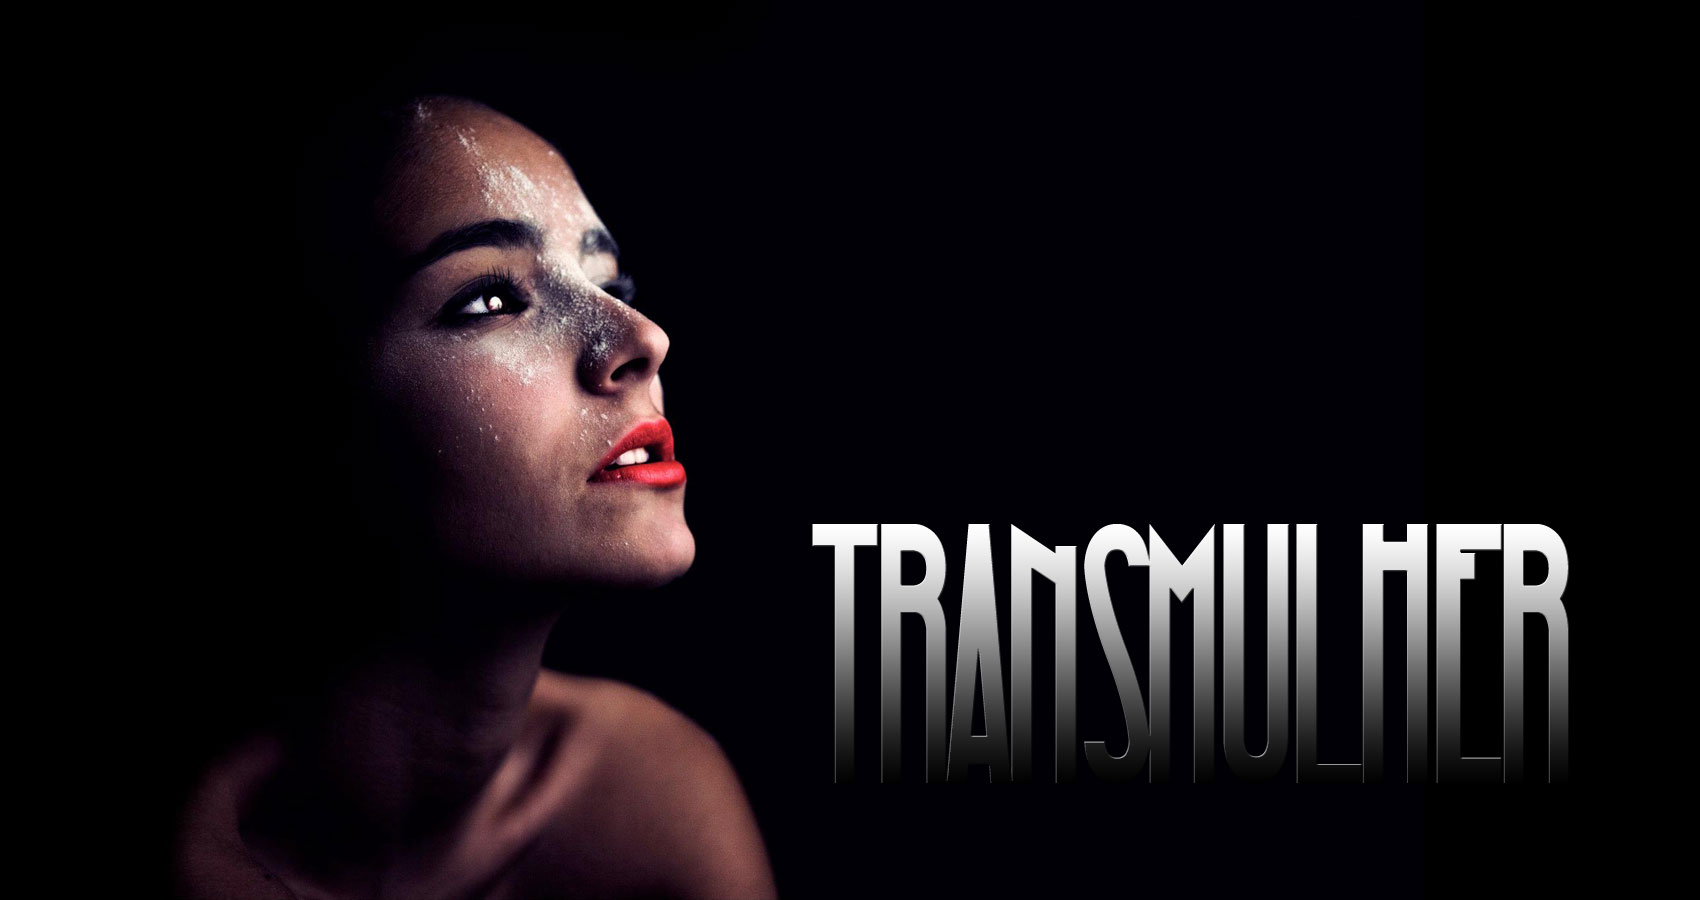 TransMulher written by Léa Ferro at Spillwords.com